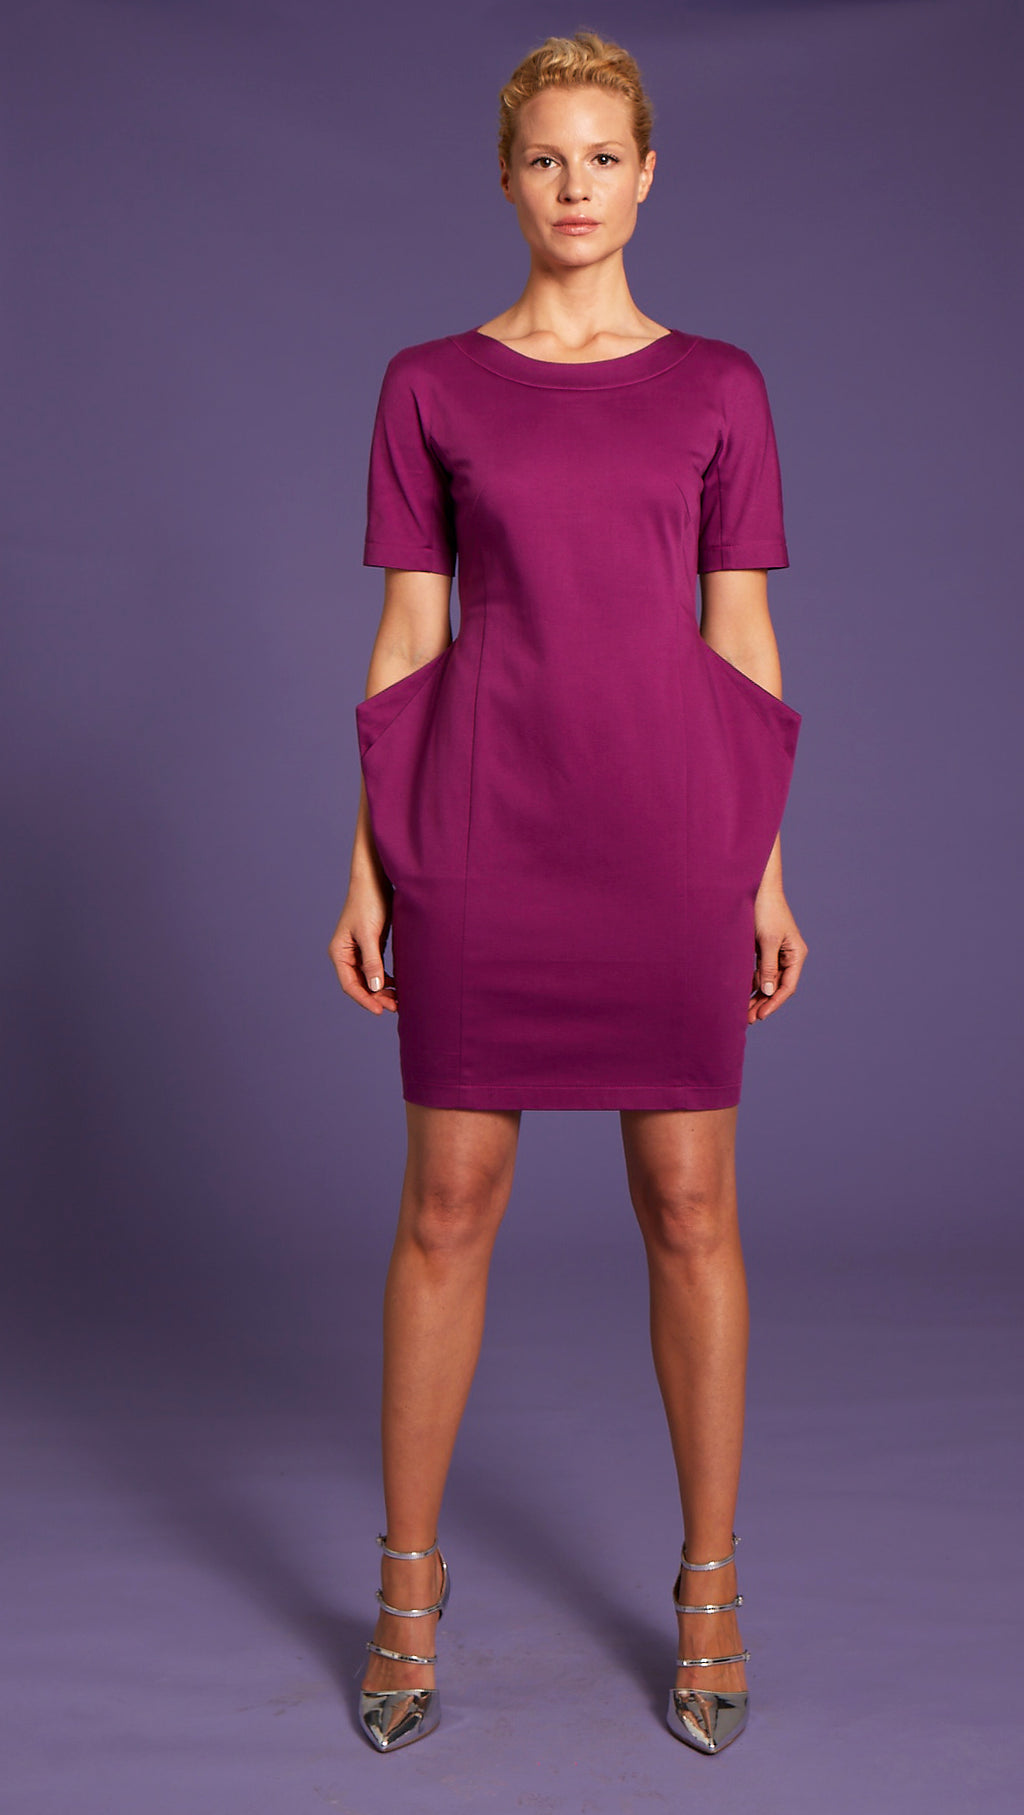 Organic Cotton Fuchsia Dress